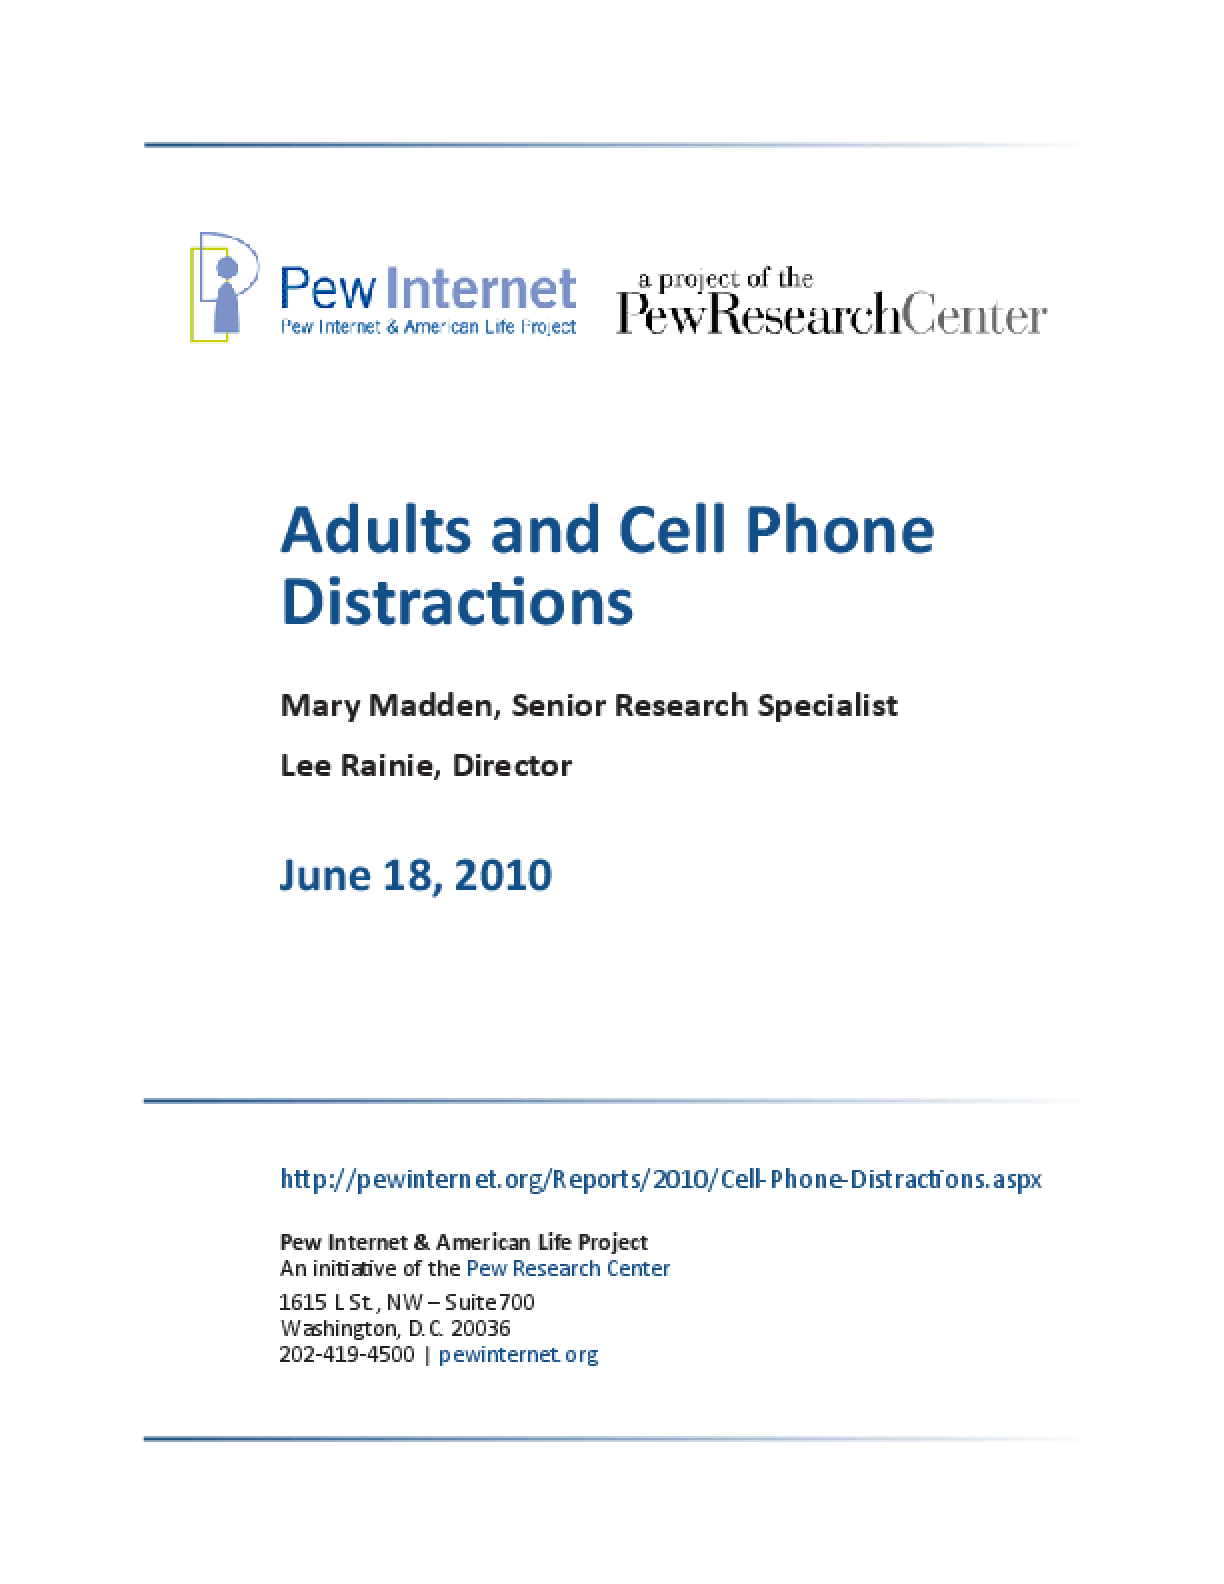 Adults and Cell Phone Distractions